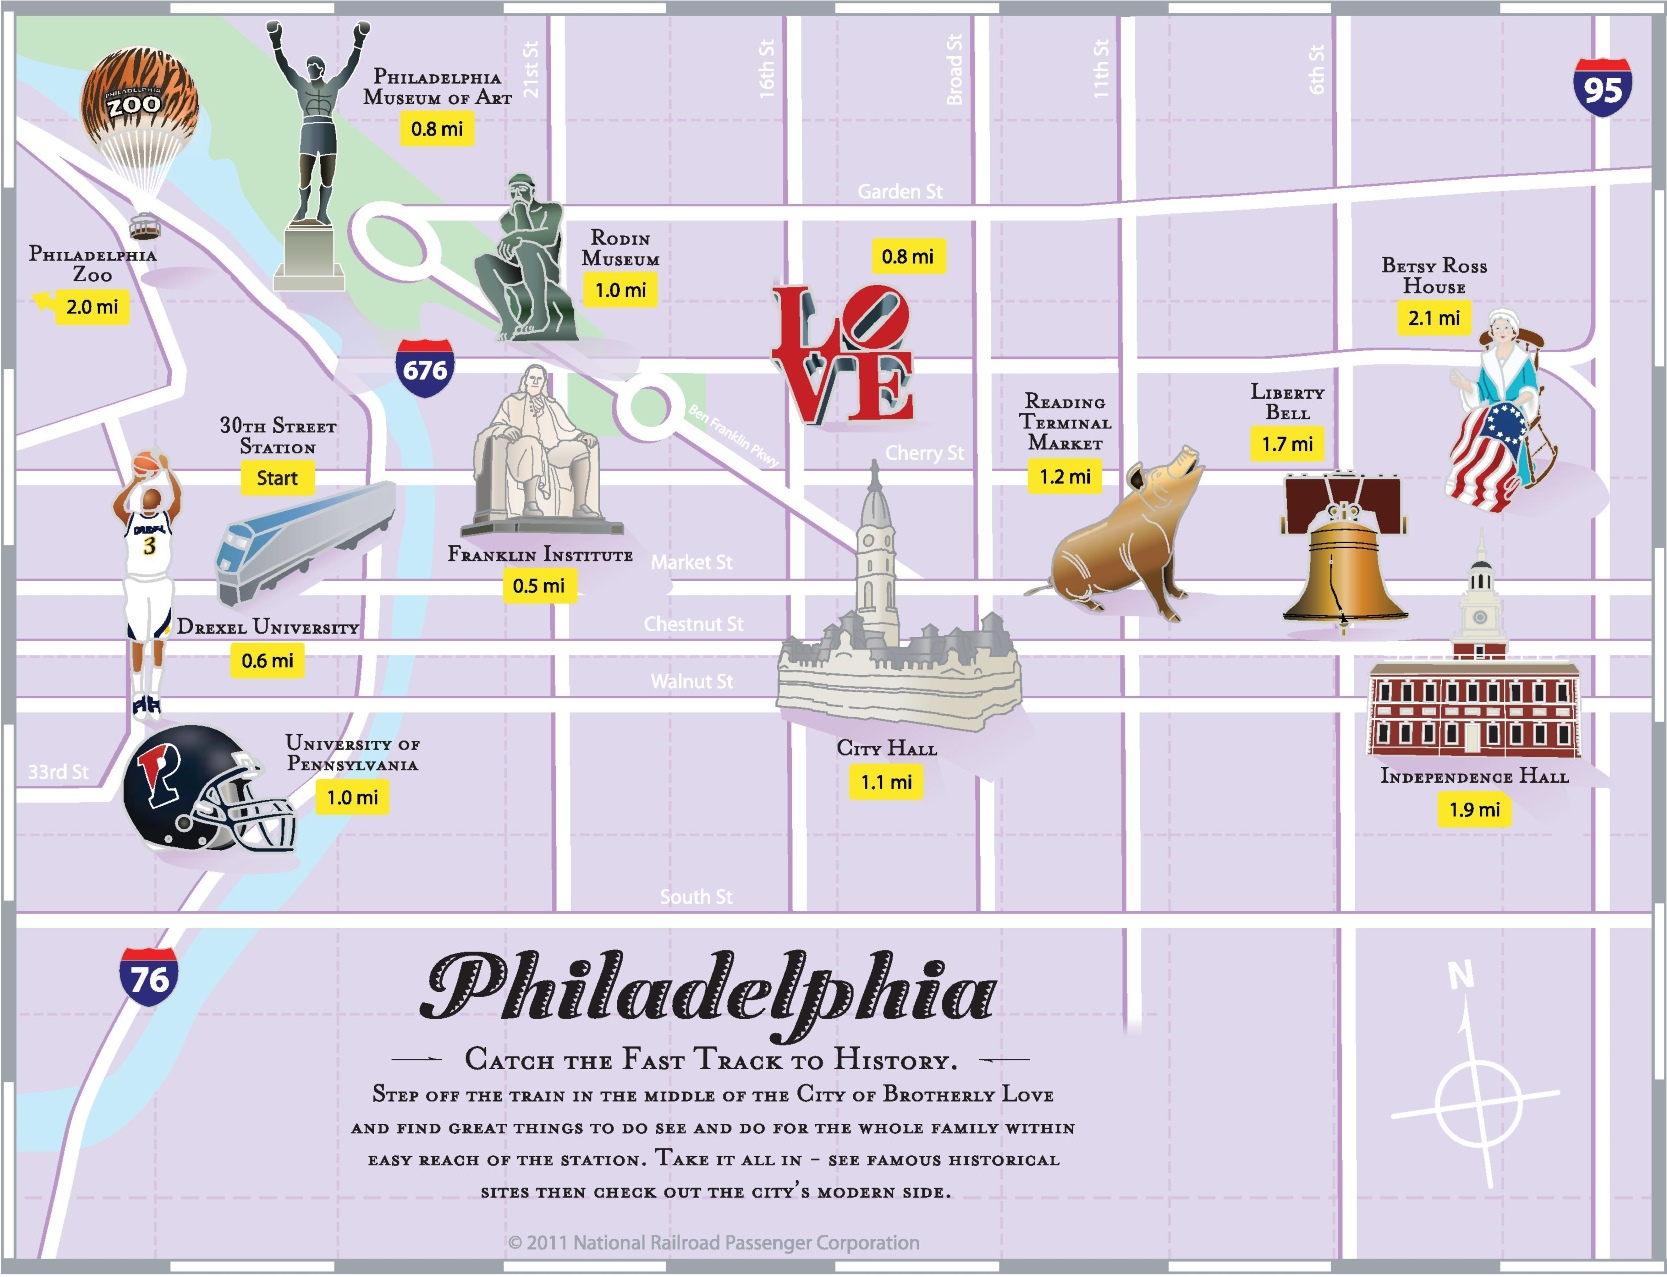 Philadelphia tourist attractions map – Michigan Tourist Attractions Map